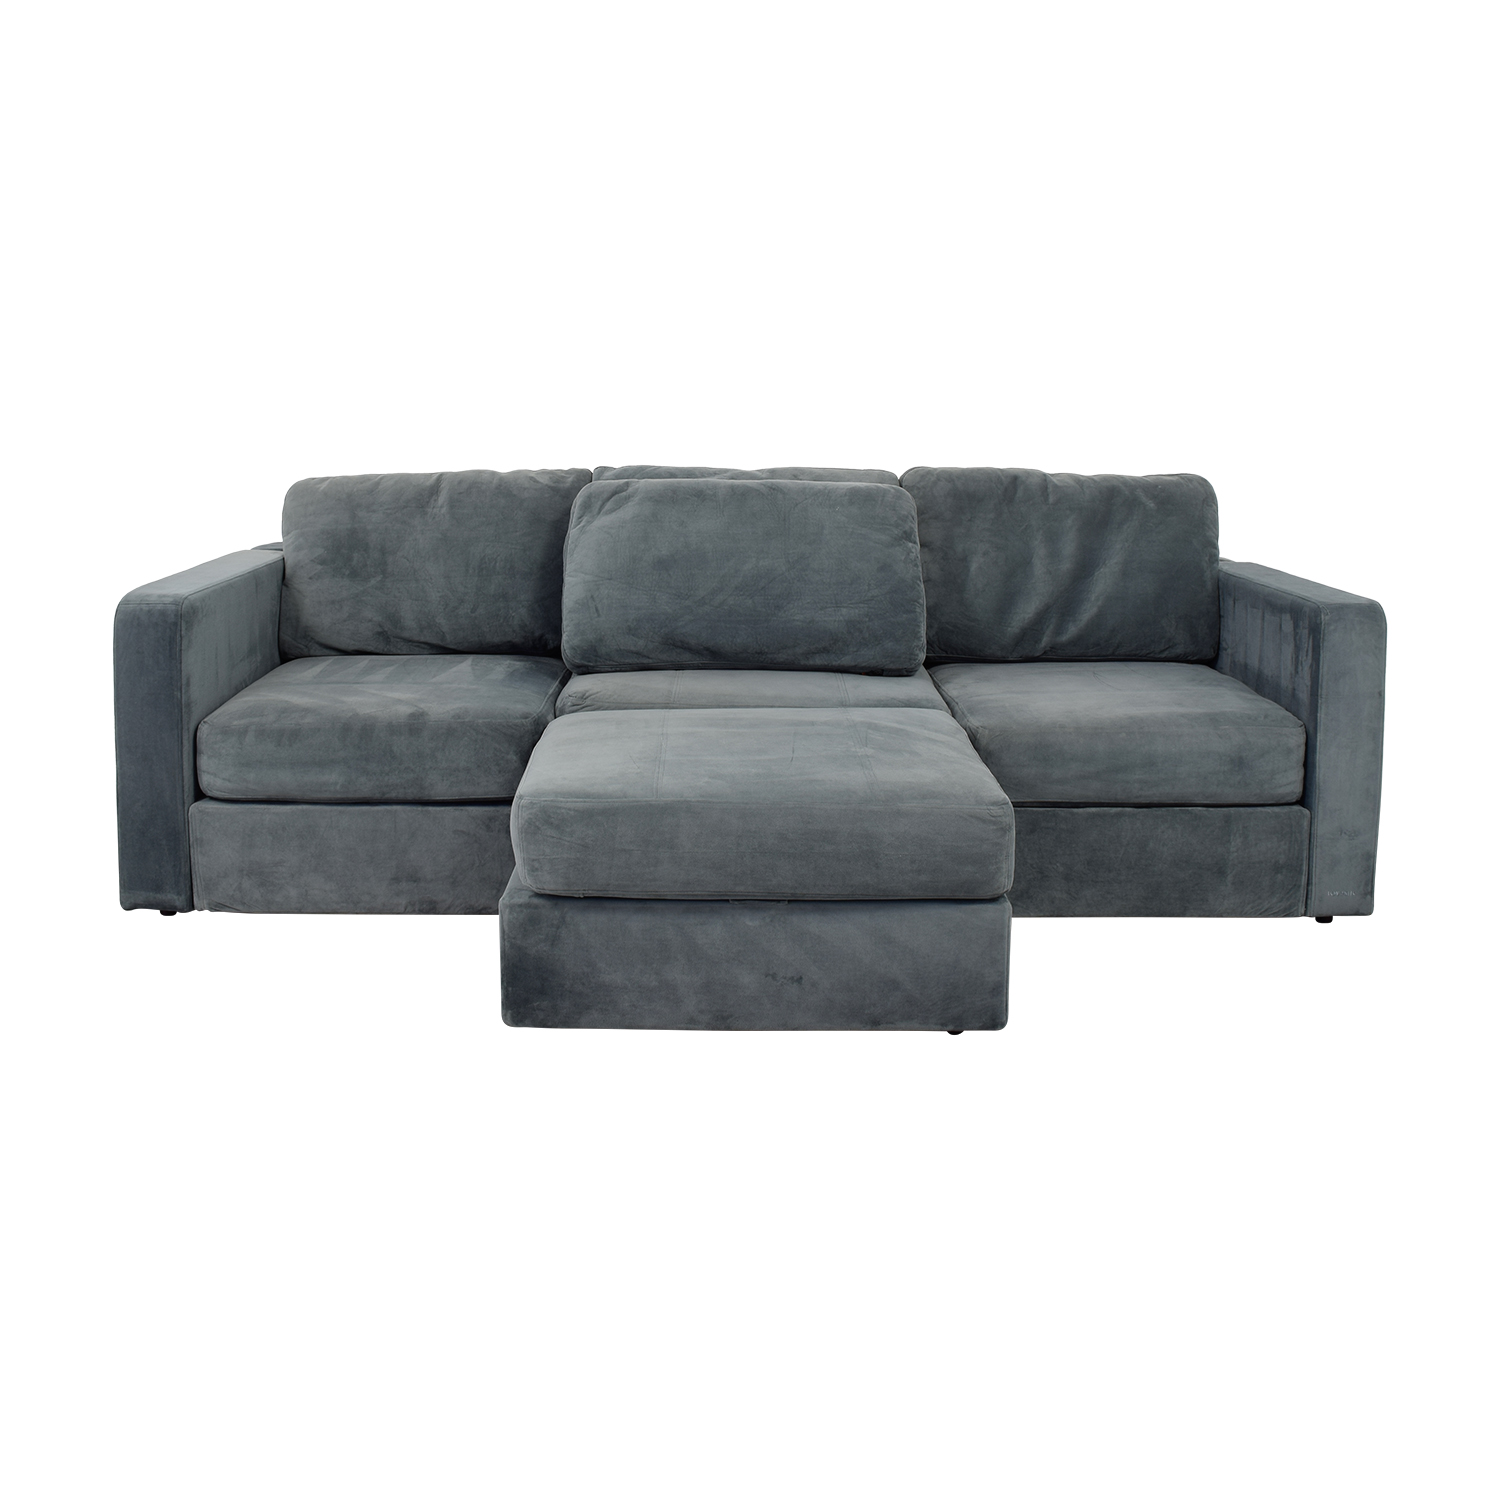 Lovesac Lovesac Grey Center Chaise Sectional Sofas